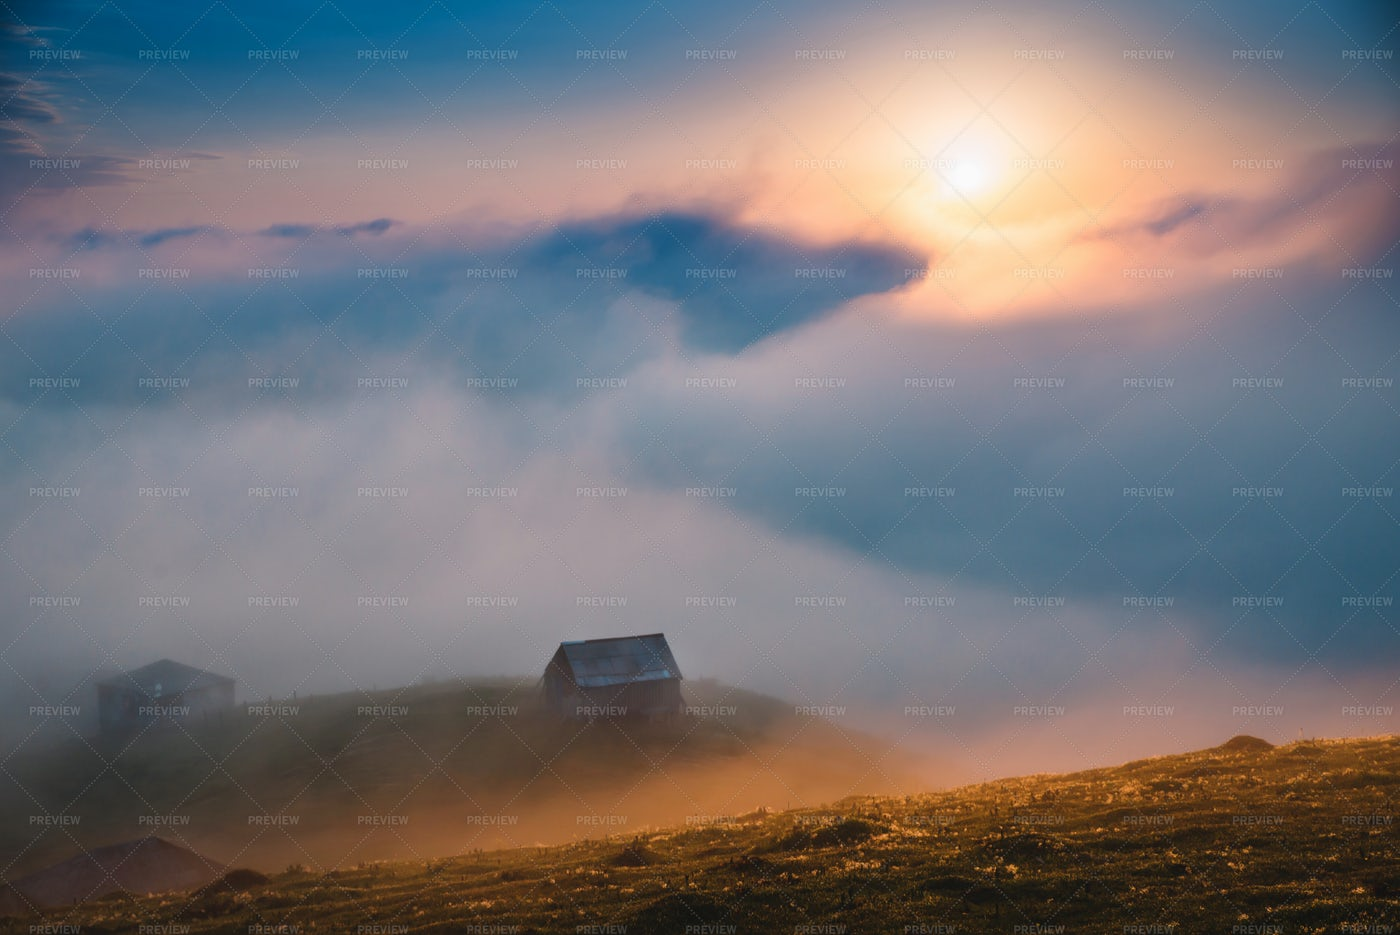 Fog, Clouds And Old House At Sunset: Stock Photos